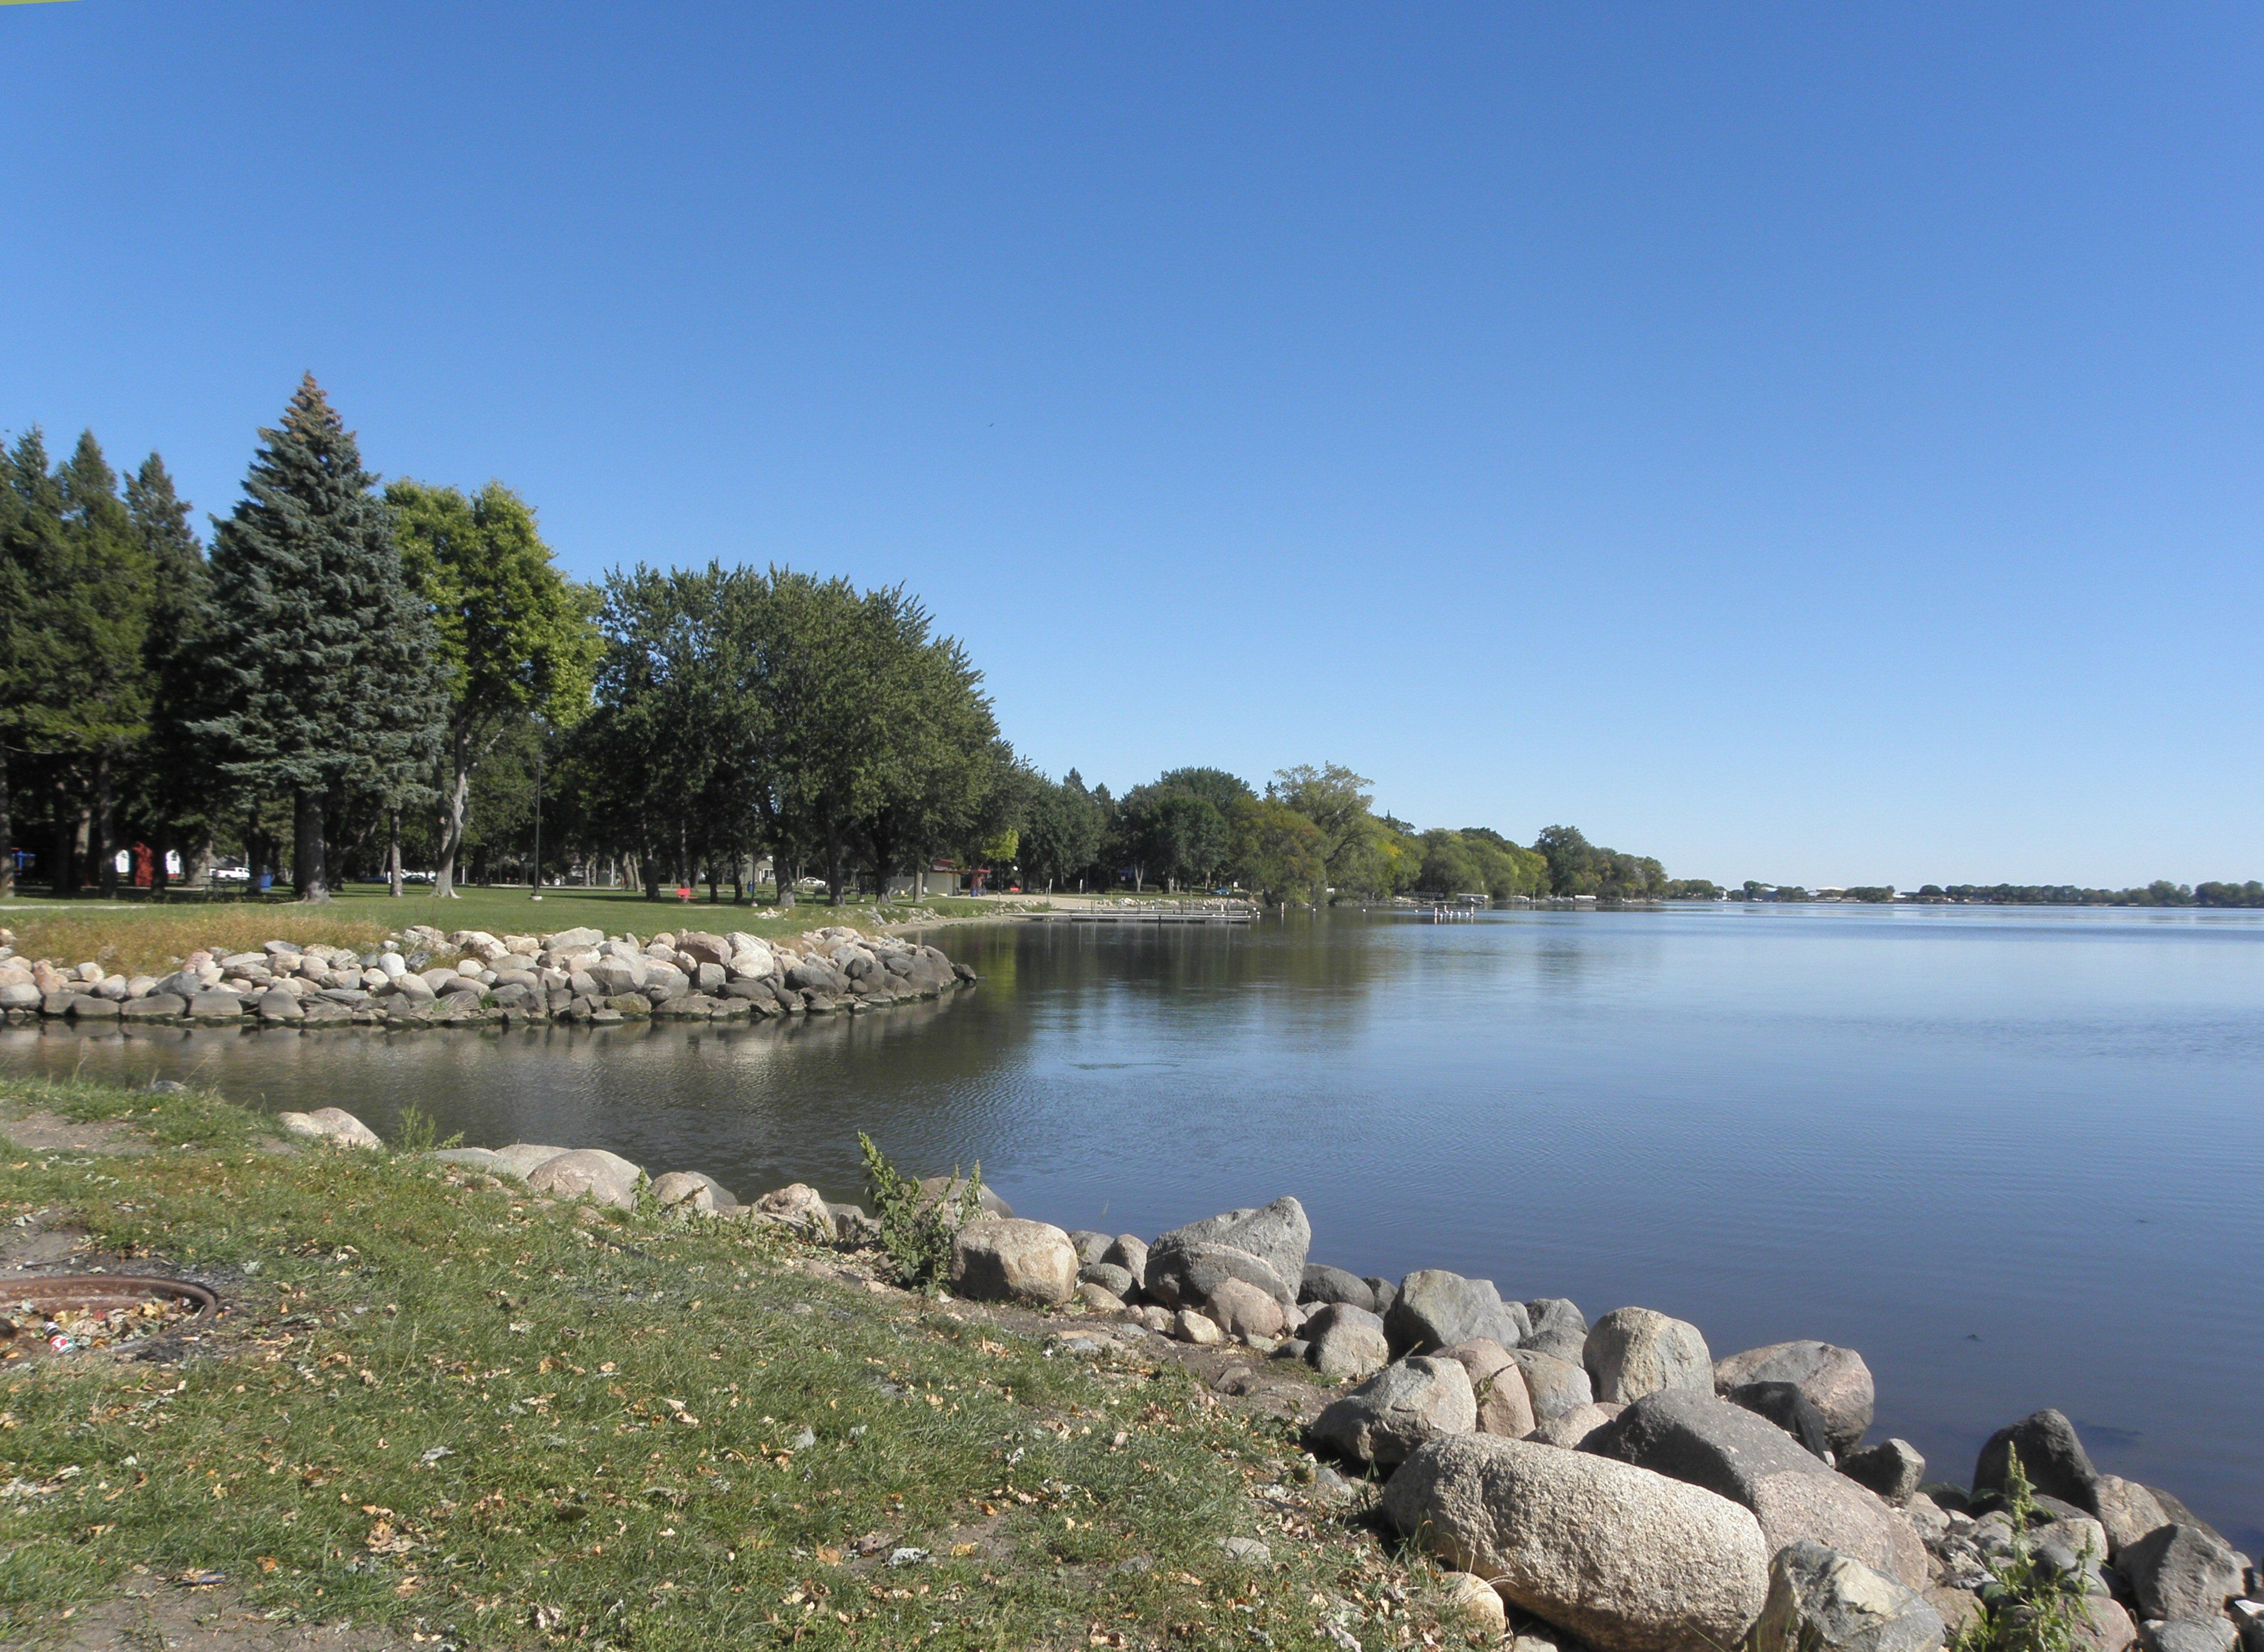 Centennial Park area looking accross outlet from Whiskey Ditch towards the East on North side of Lake Okabena in Worthington, MN